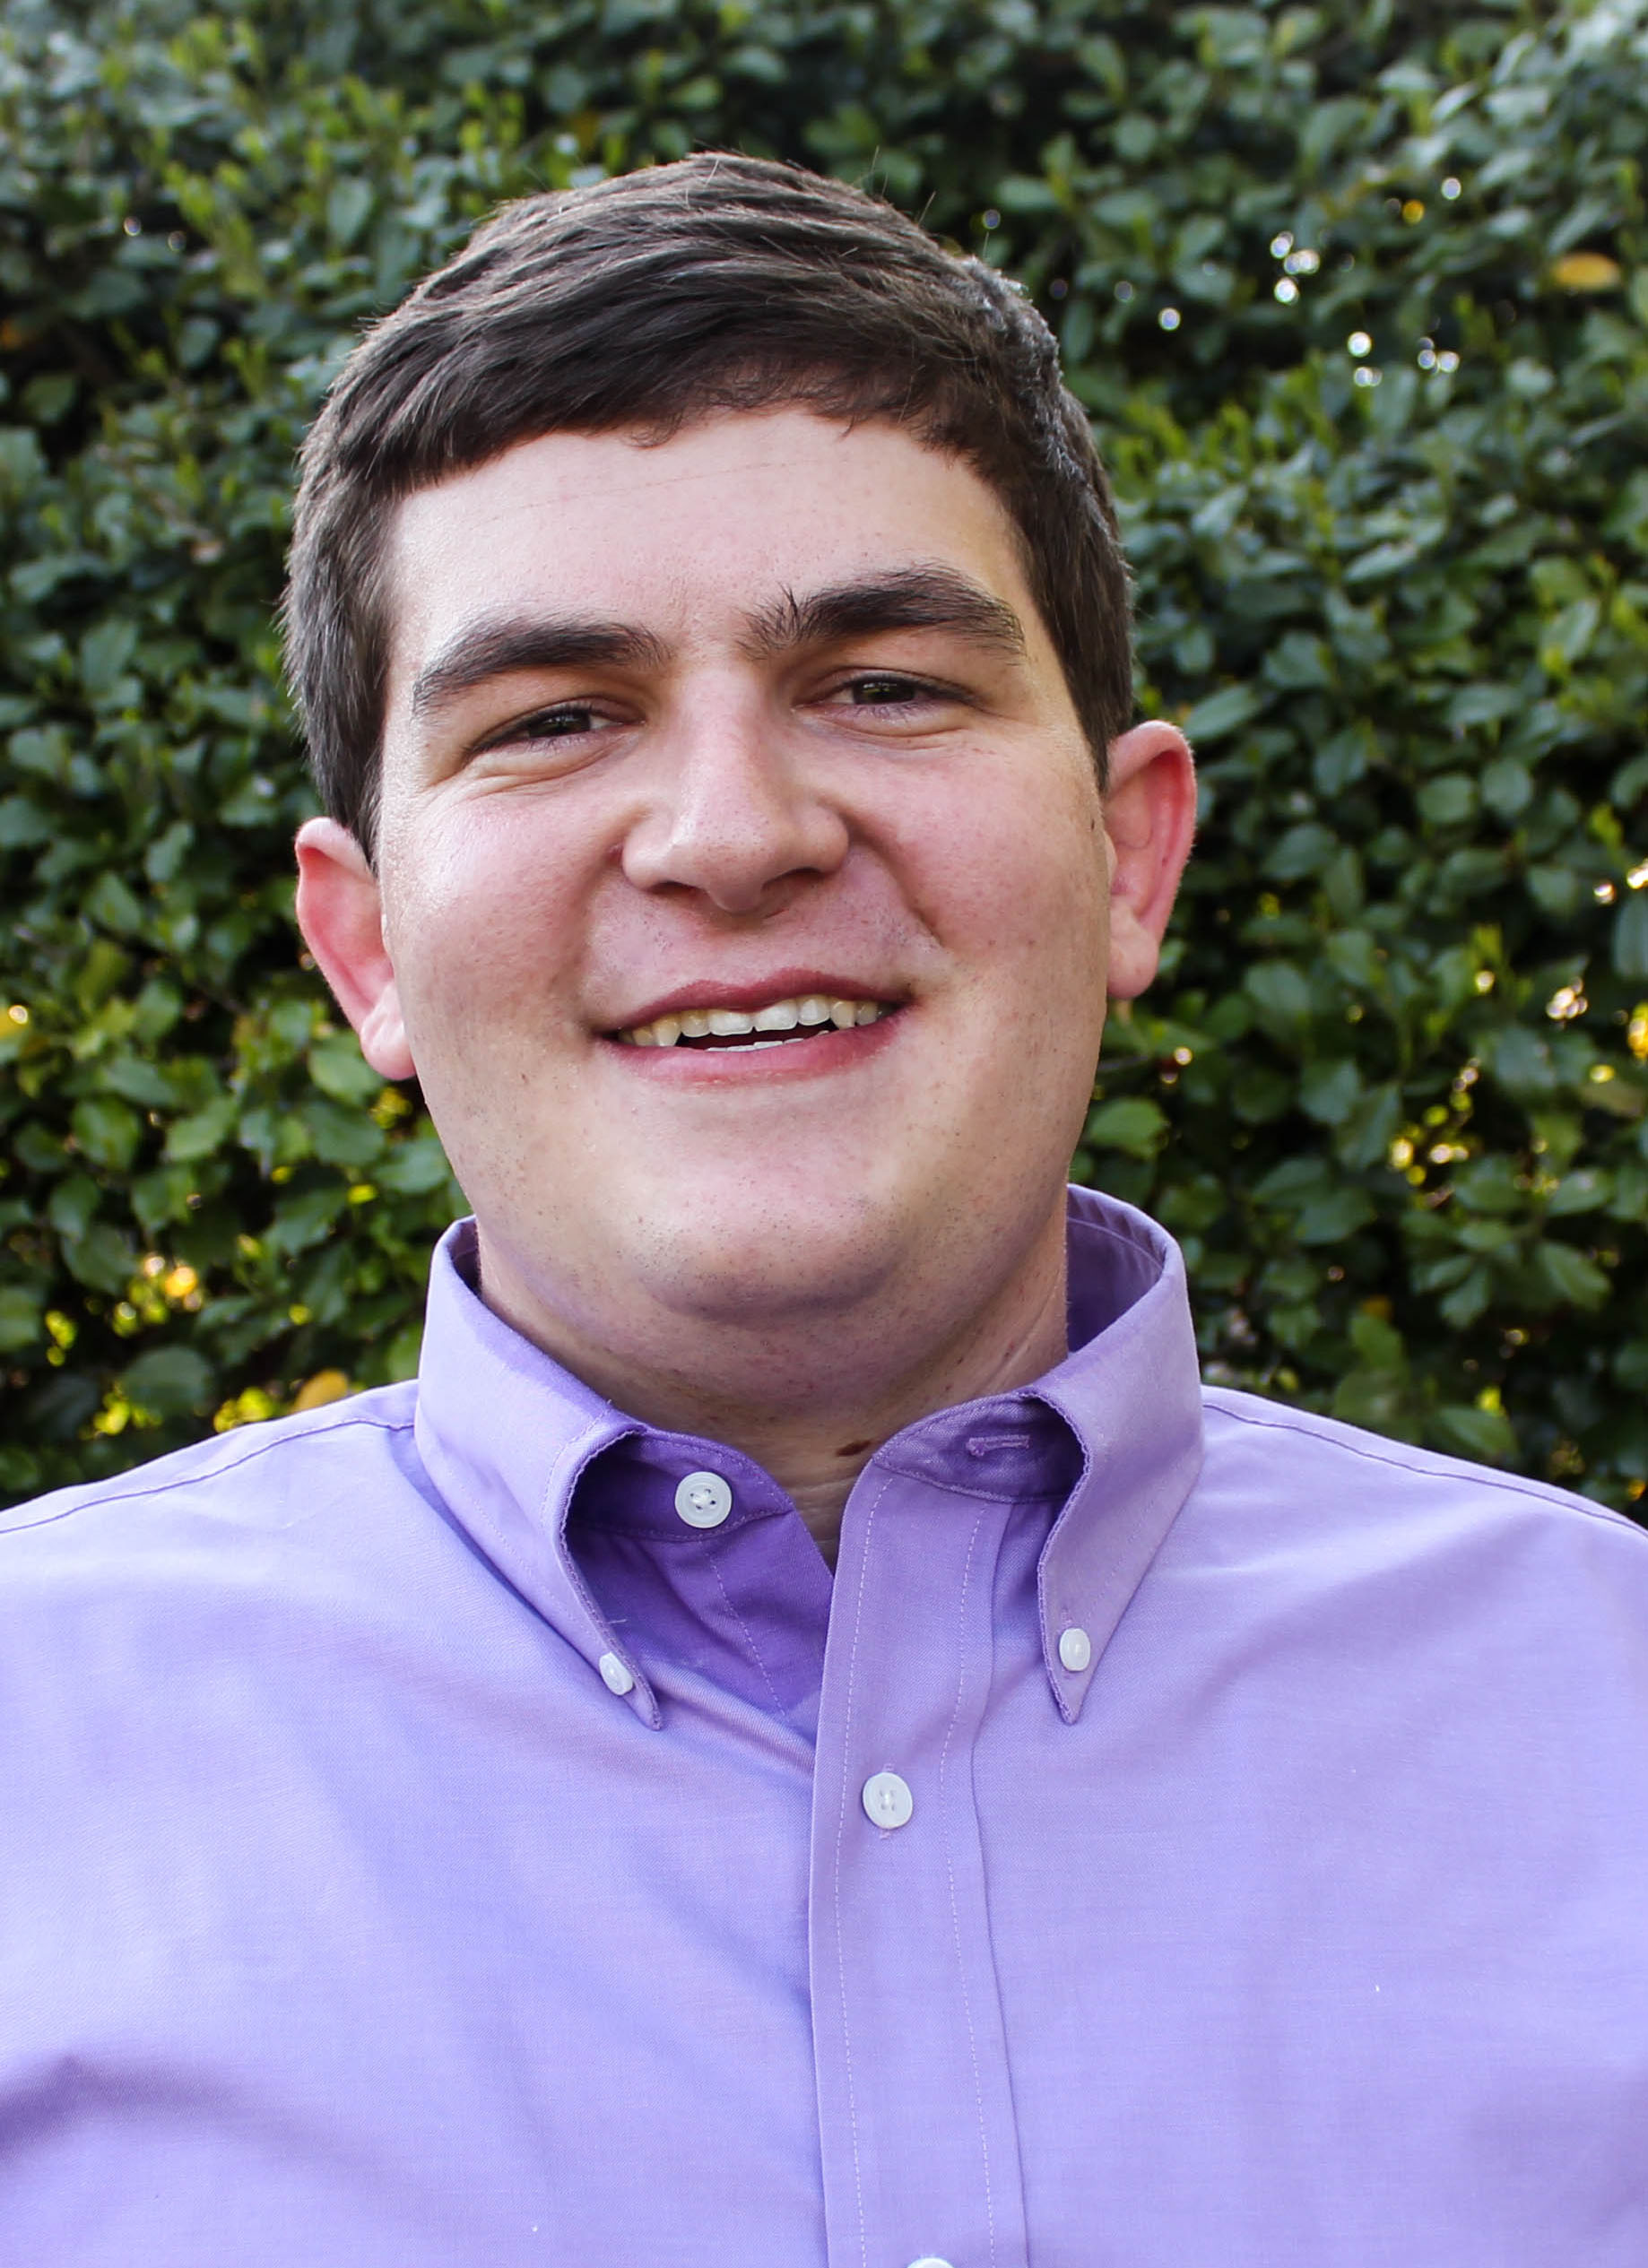 Brigham Johnson will be graduating in May from Western Carolina University. While there, he has focused on design and stage management, but also does work as a carpenter. Recently he designed the set for J.B., a biblical story about the life of Job. -